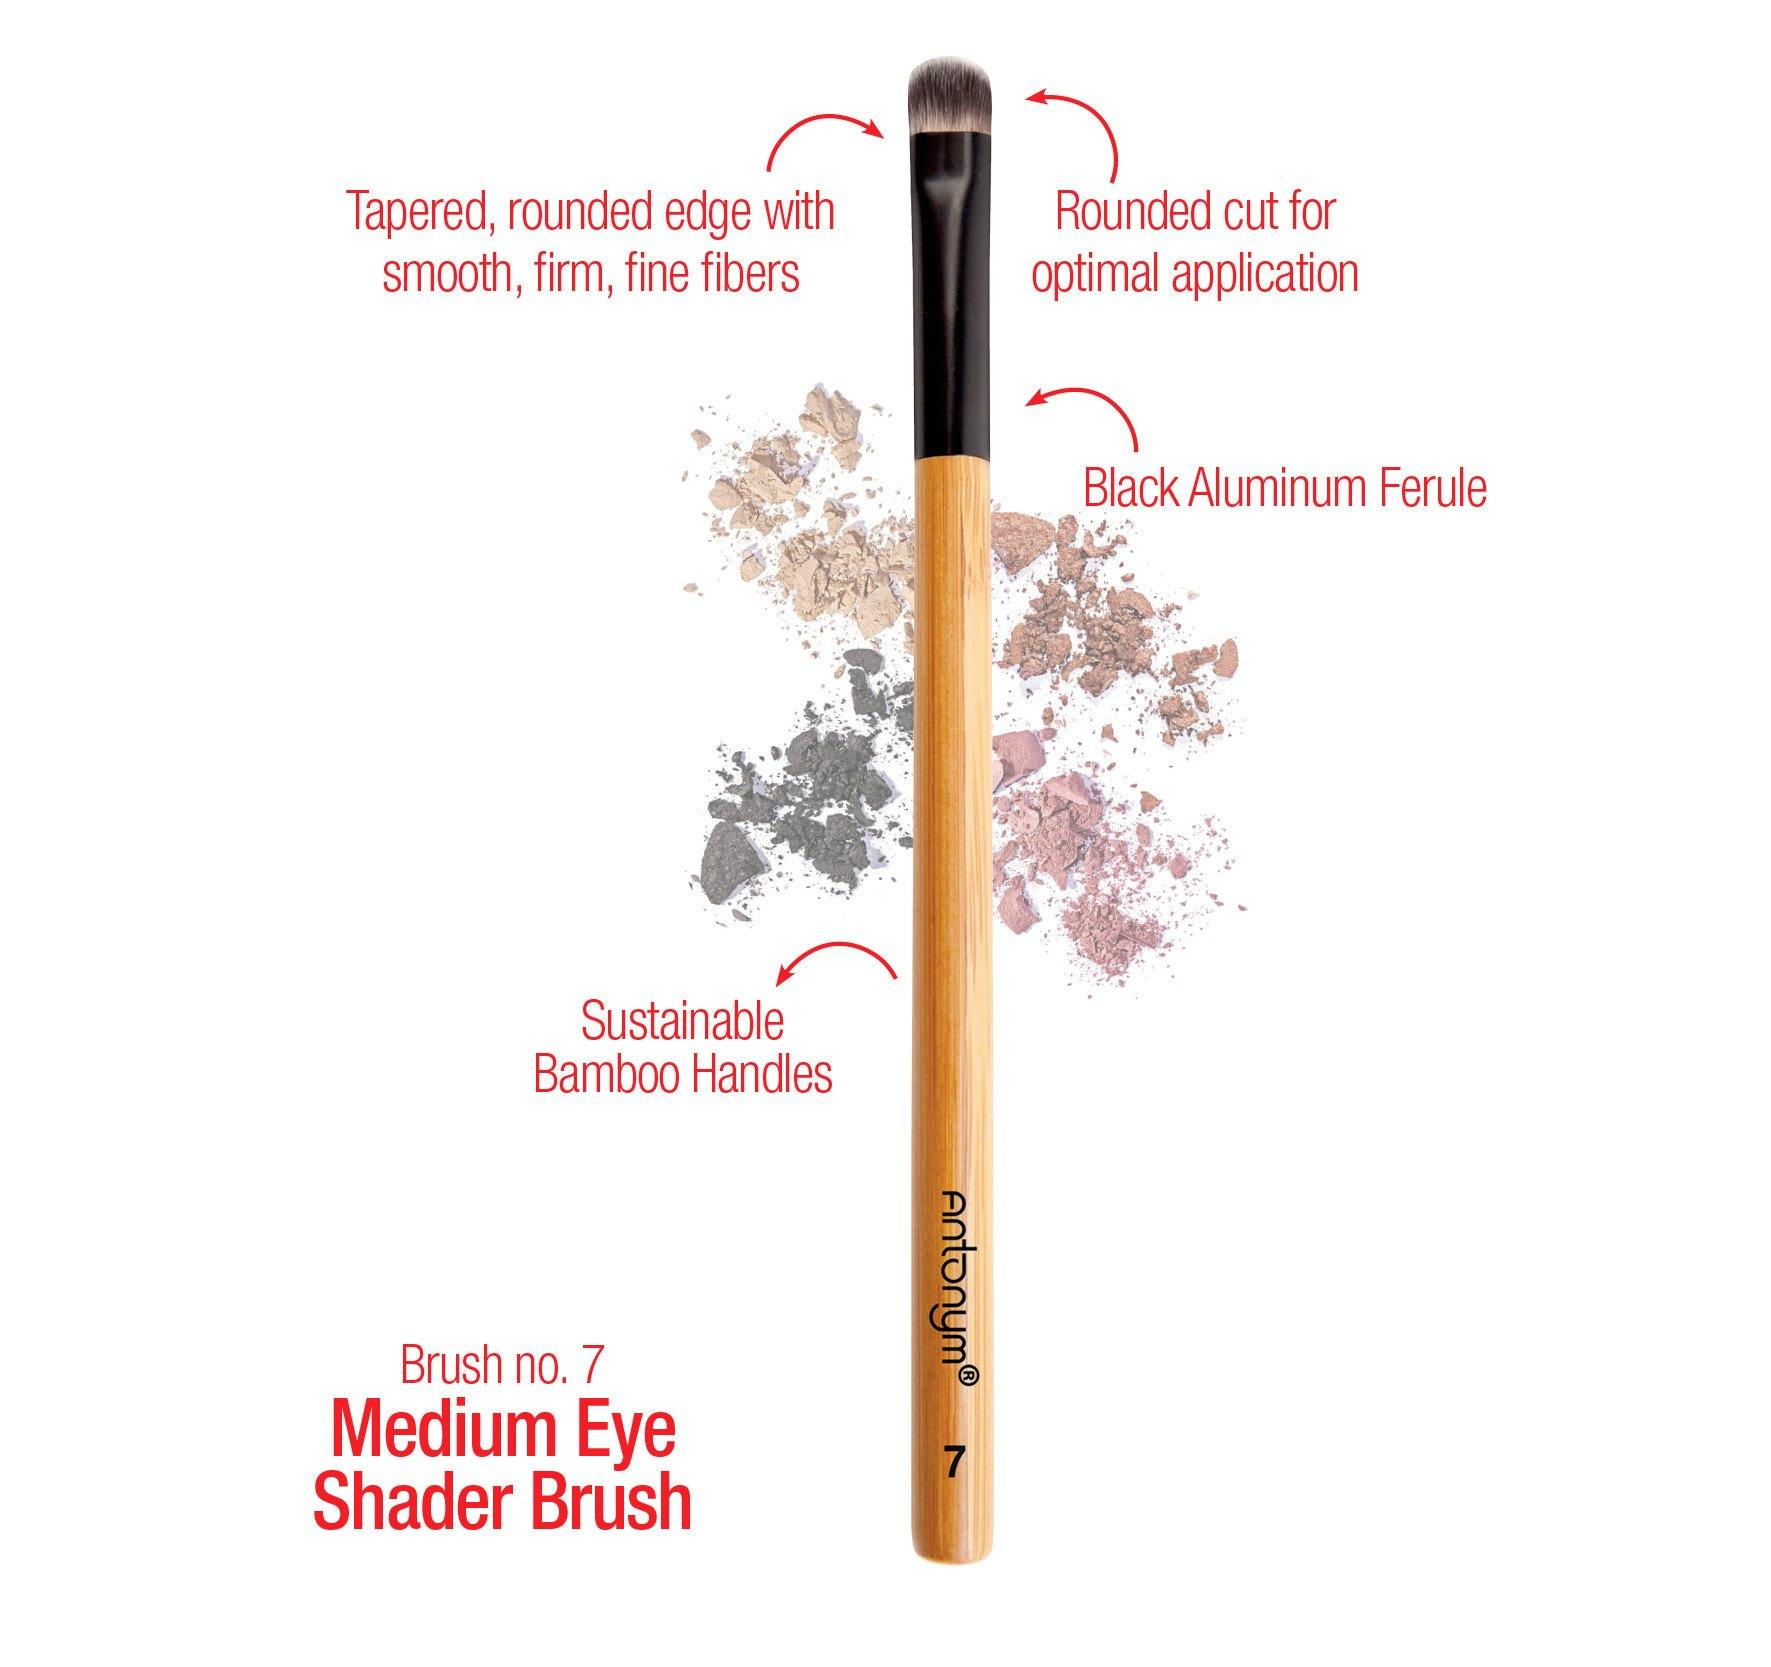 Medium Eye Shader Brush #7 - Antonym Cosmetics